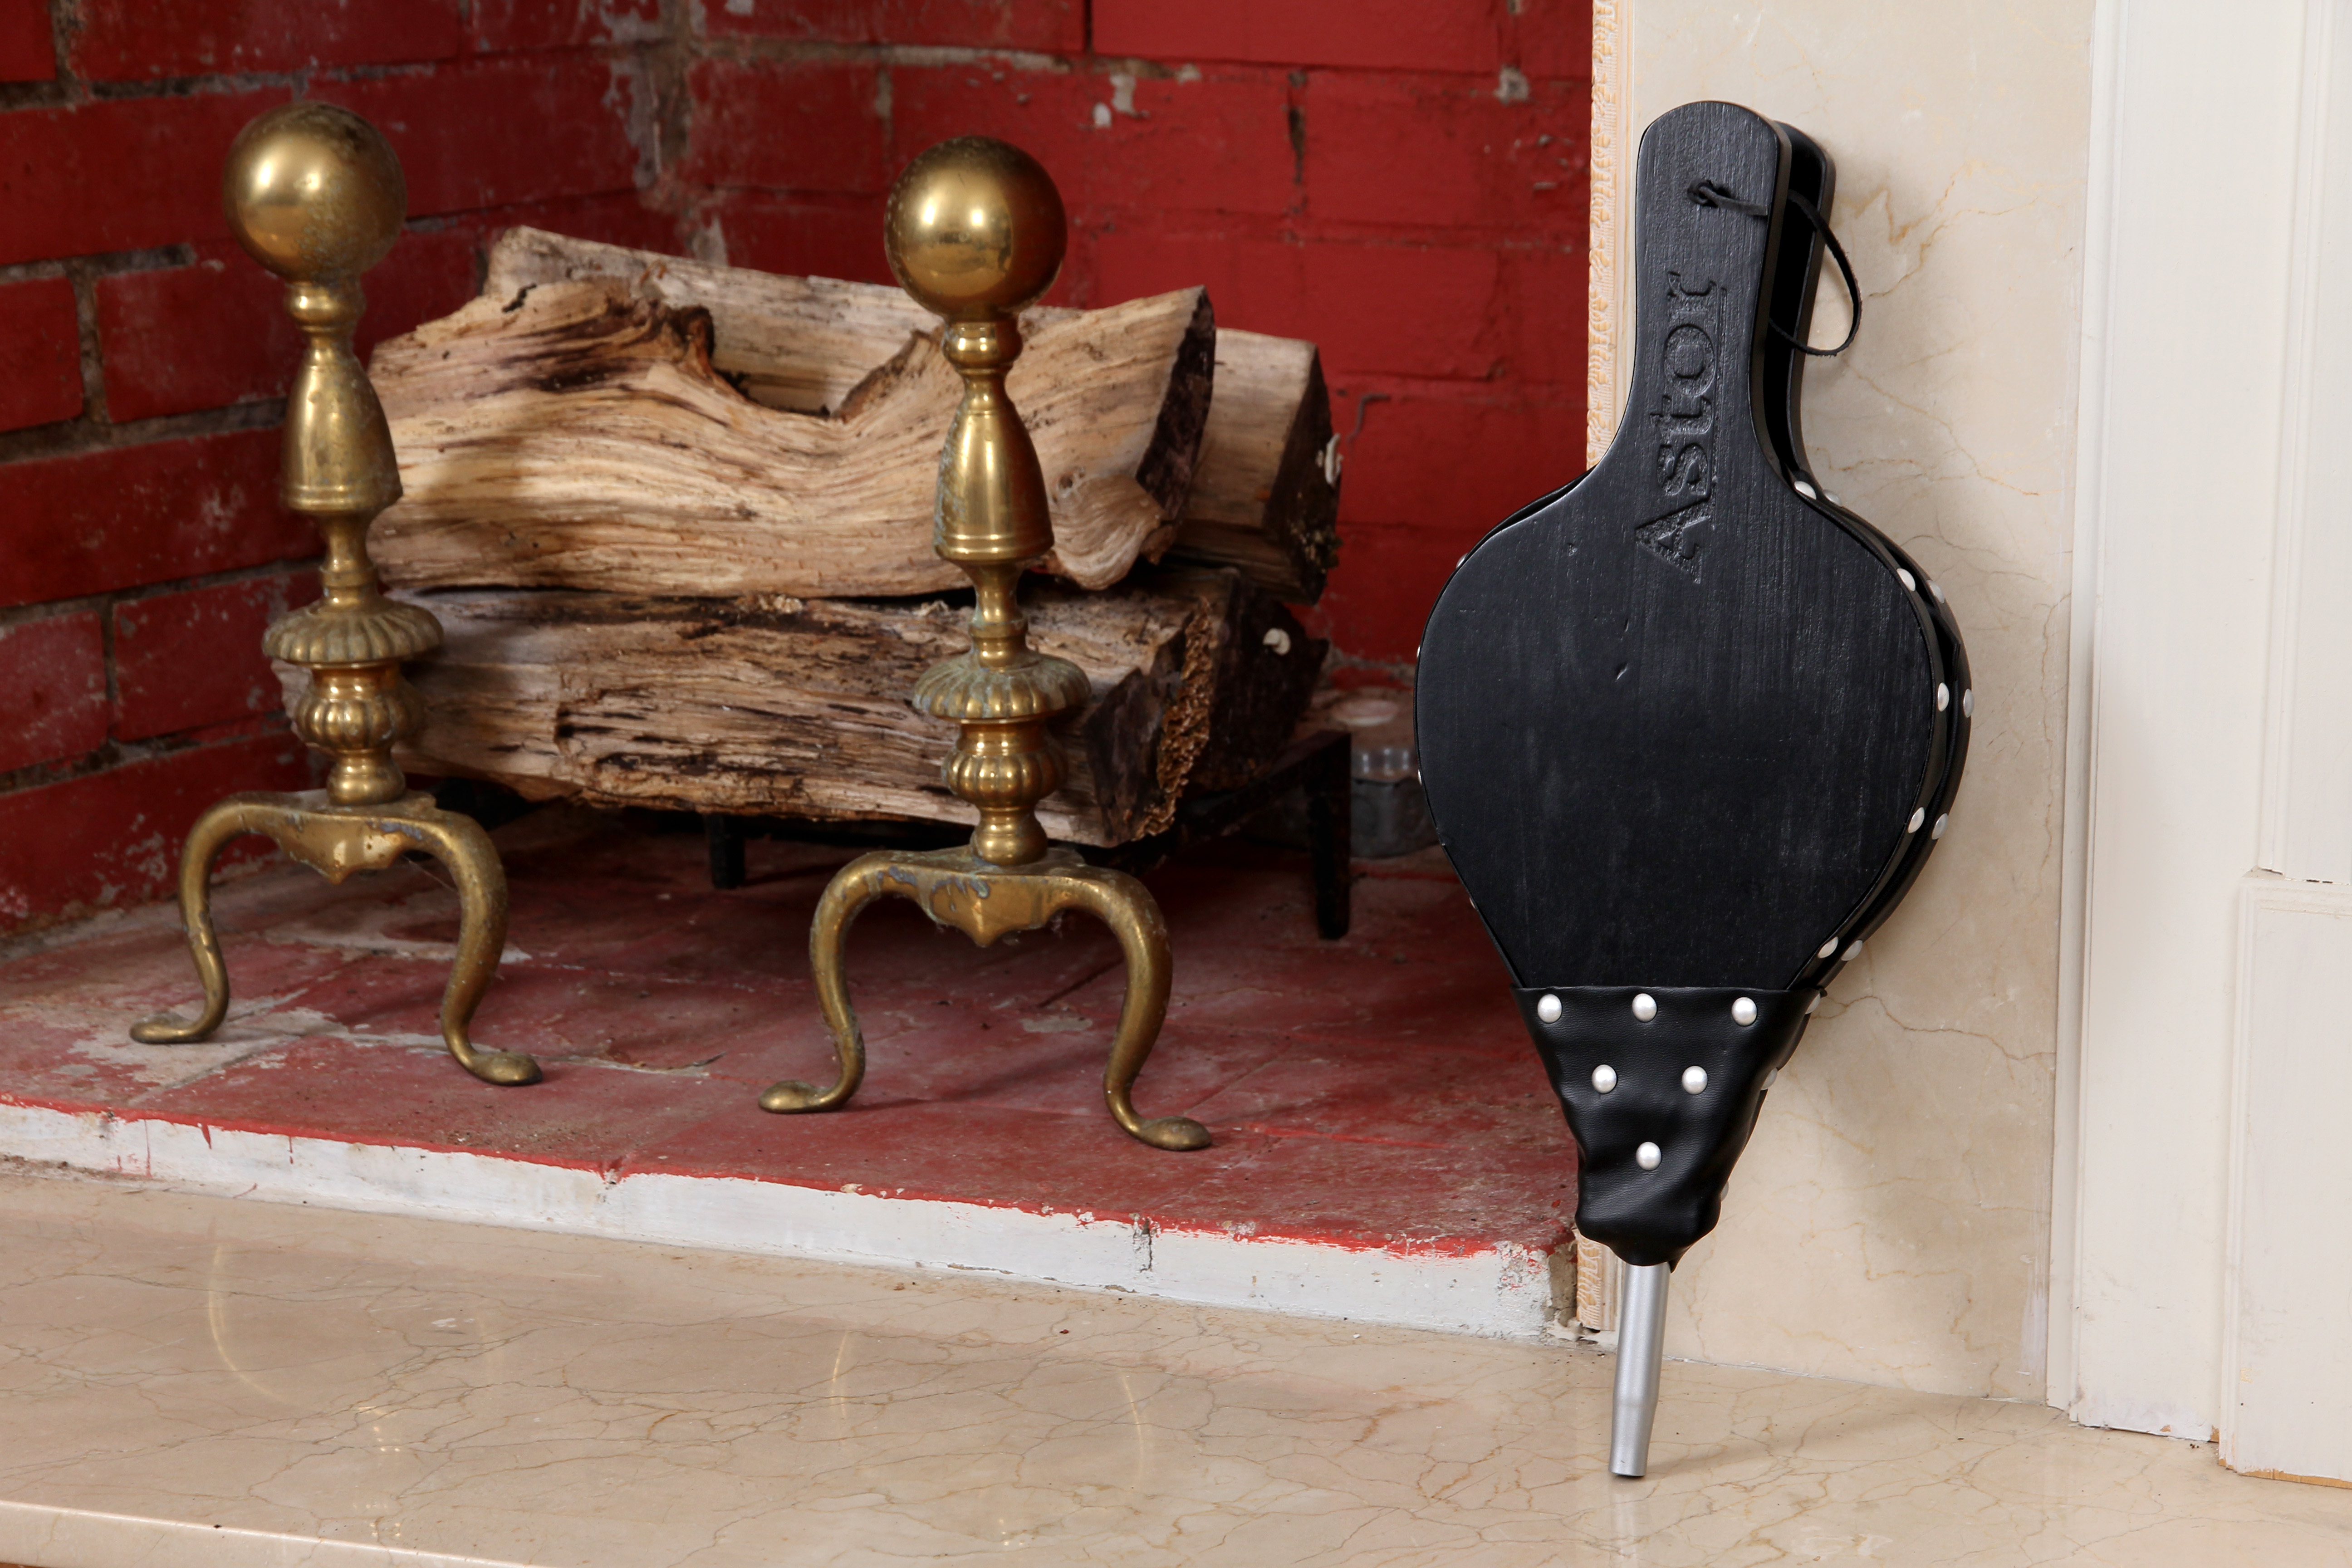 a lucky ladybug epica bellows and fireplace tongs review